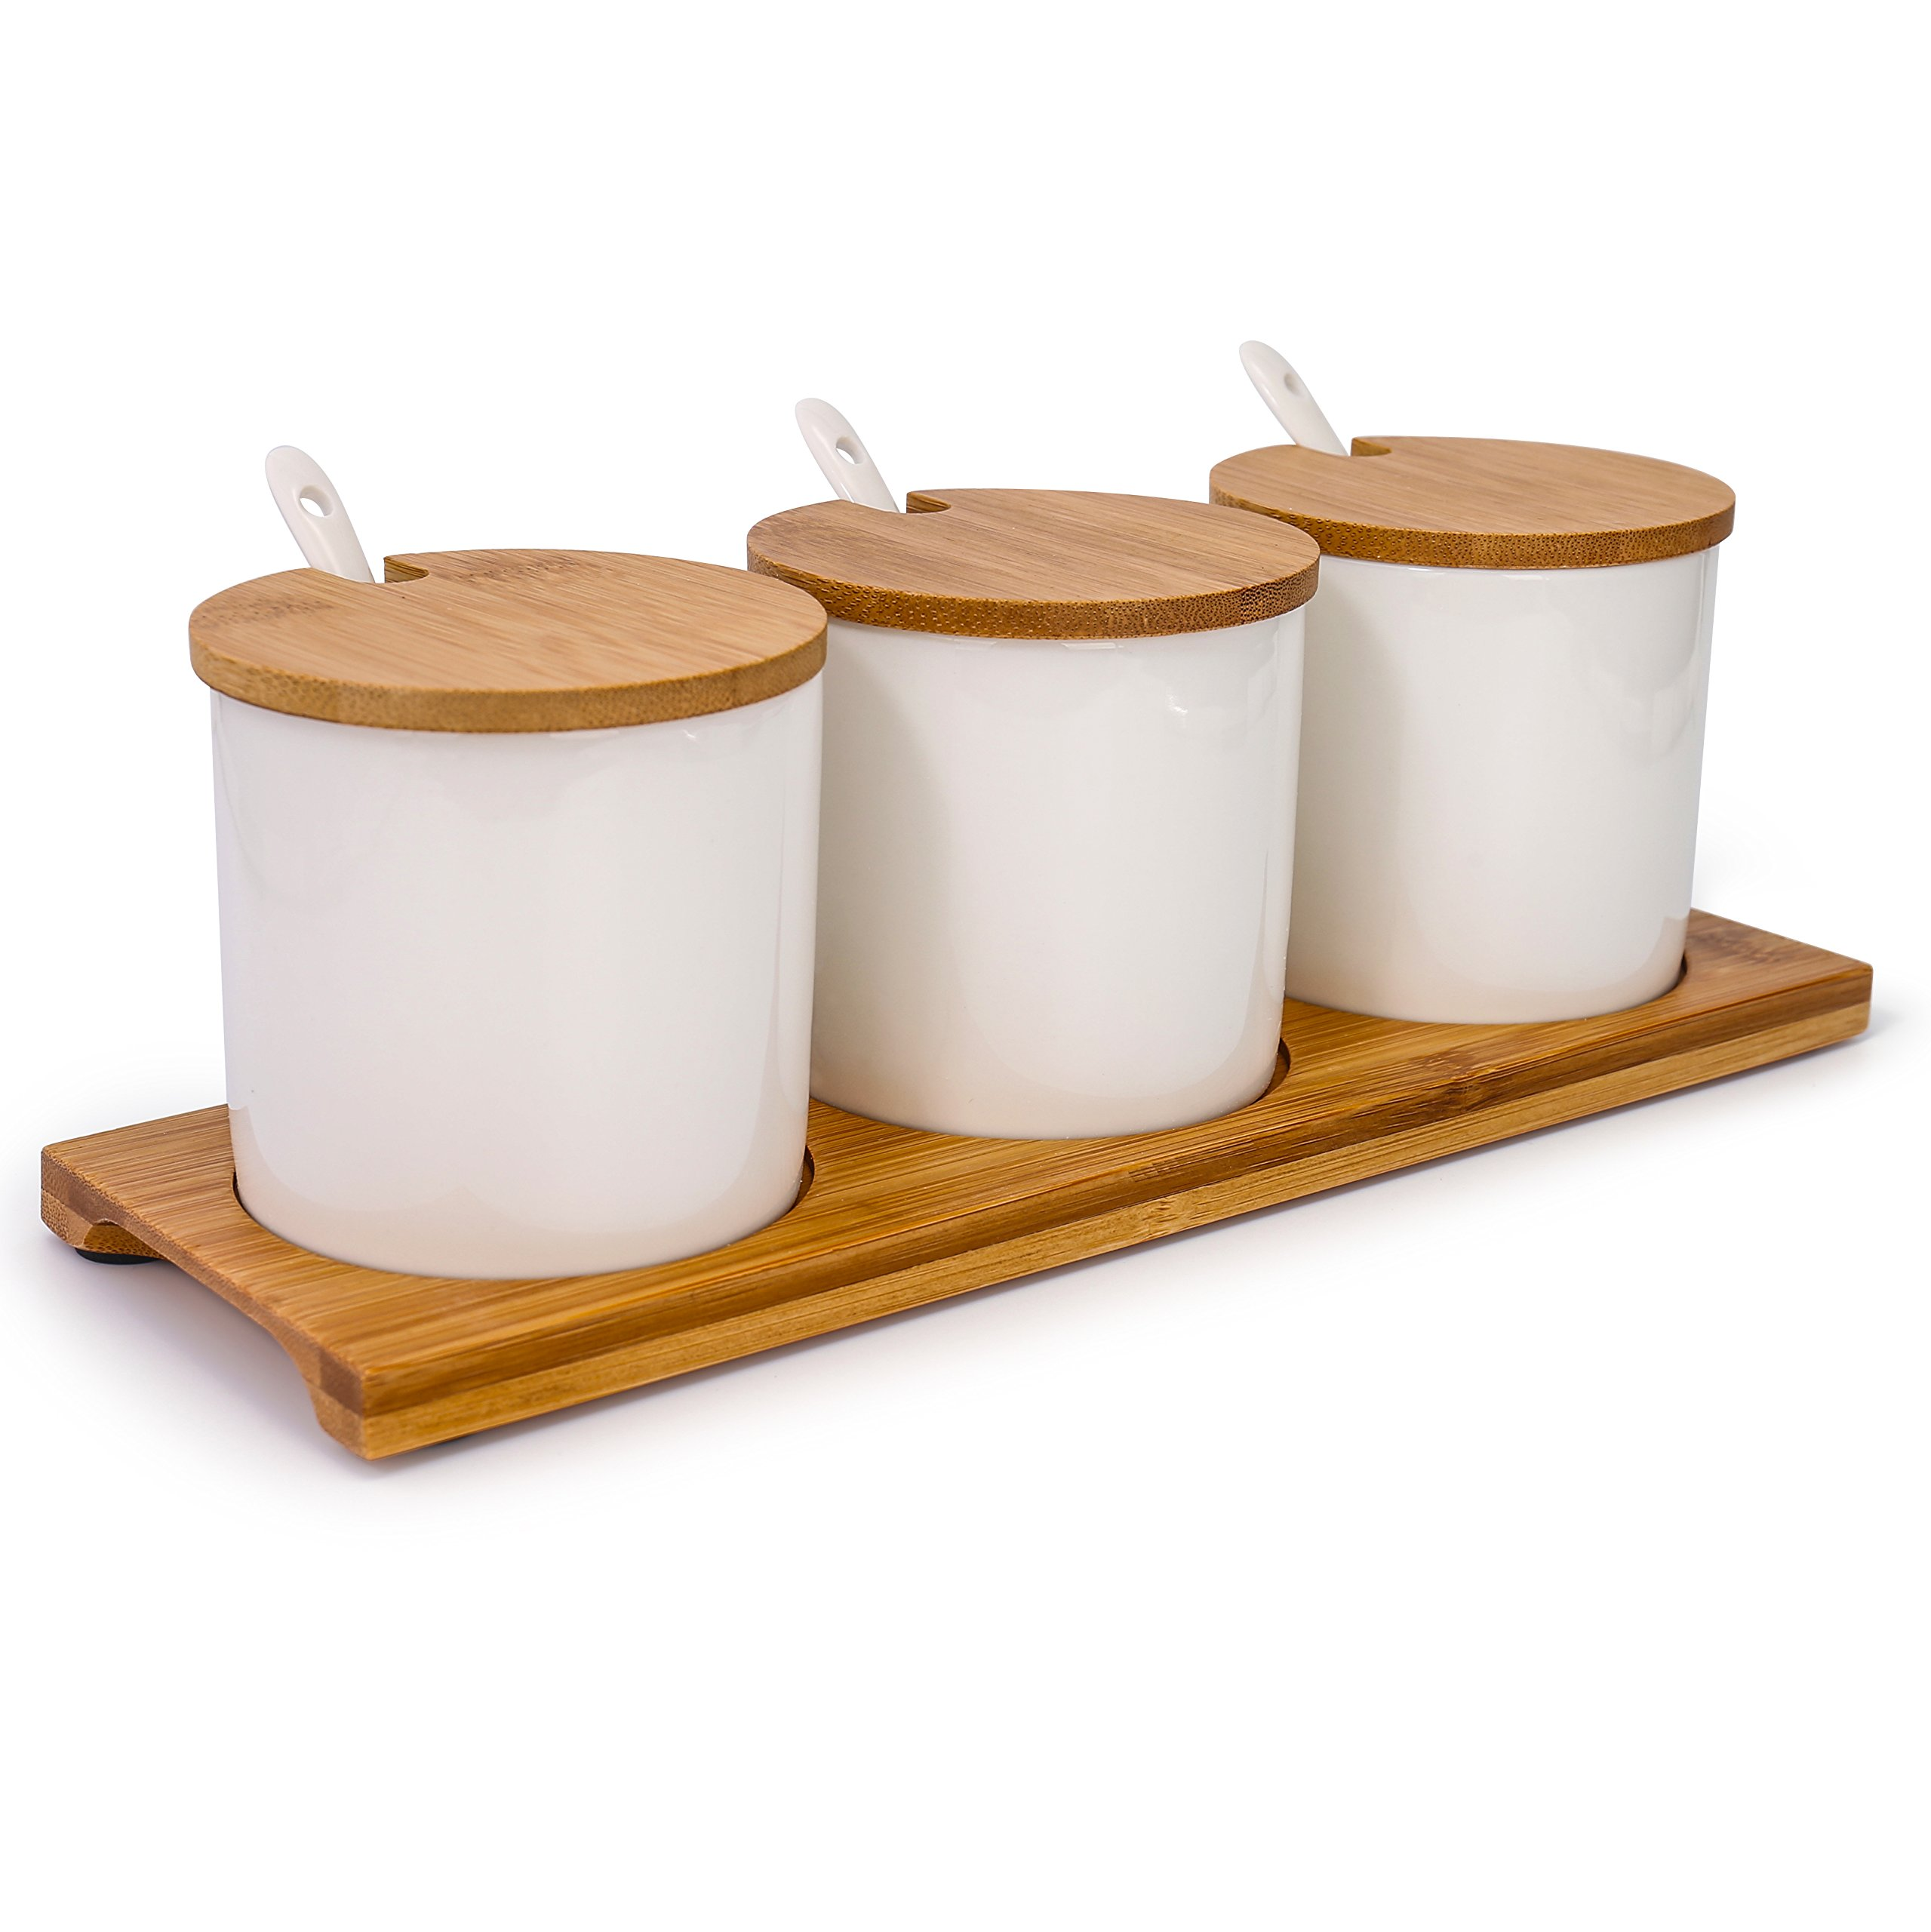 June Sky Ceramic Food Storage Containers with Bamboo Lid- Modern Design Porcelain Jar- Perfect Canister for Sugar Bowl Serving Tea, Coffee, Spice- Condiment Pot 8 oz, white(Sugar Container Set of 3)